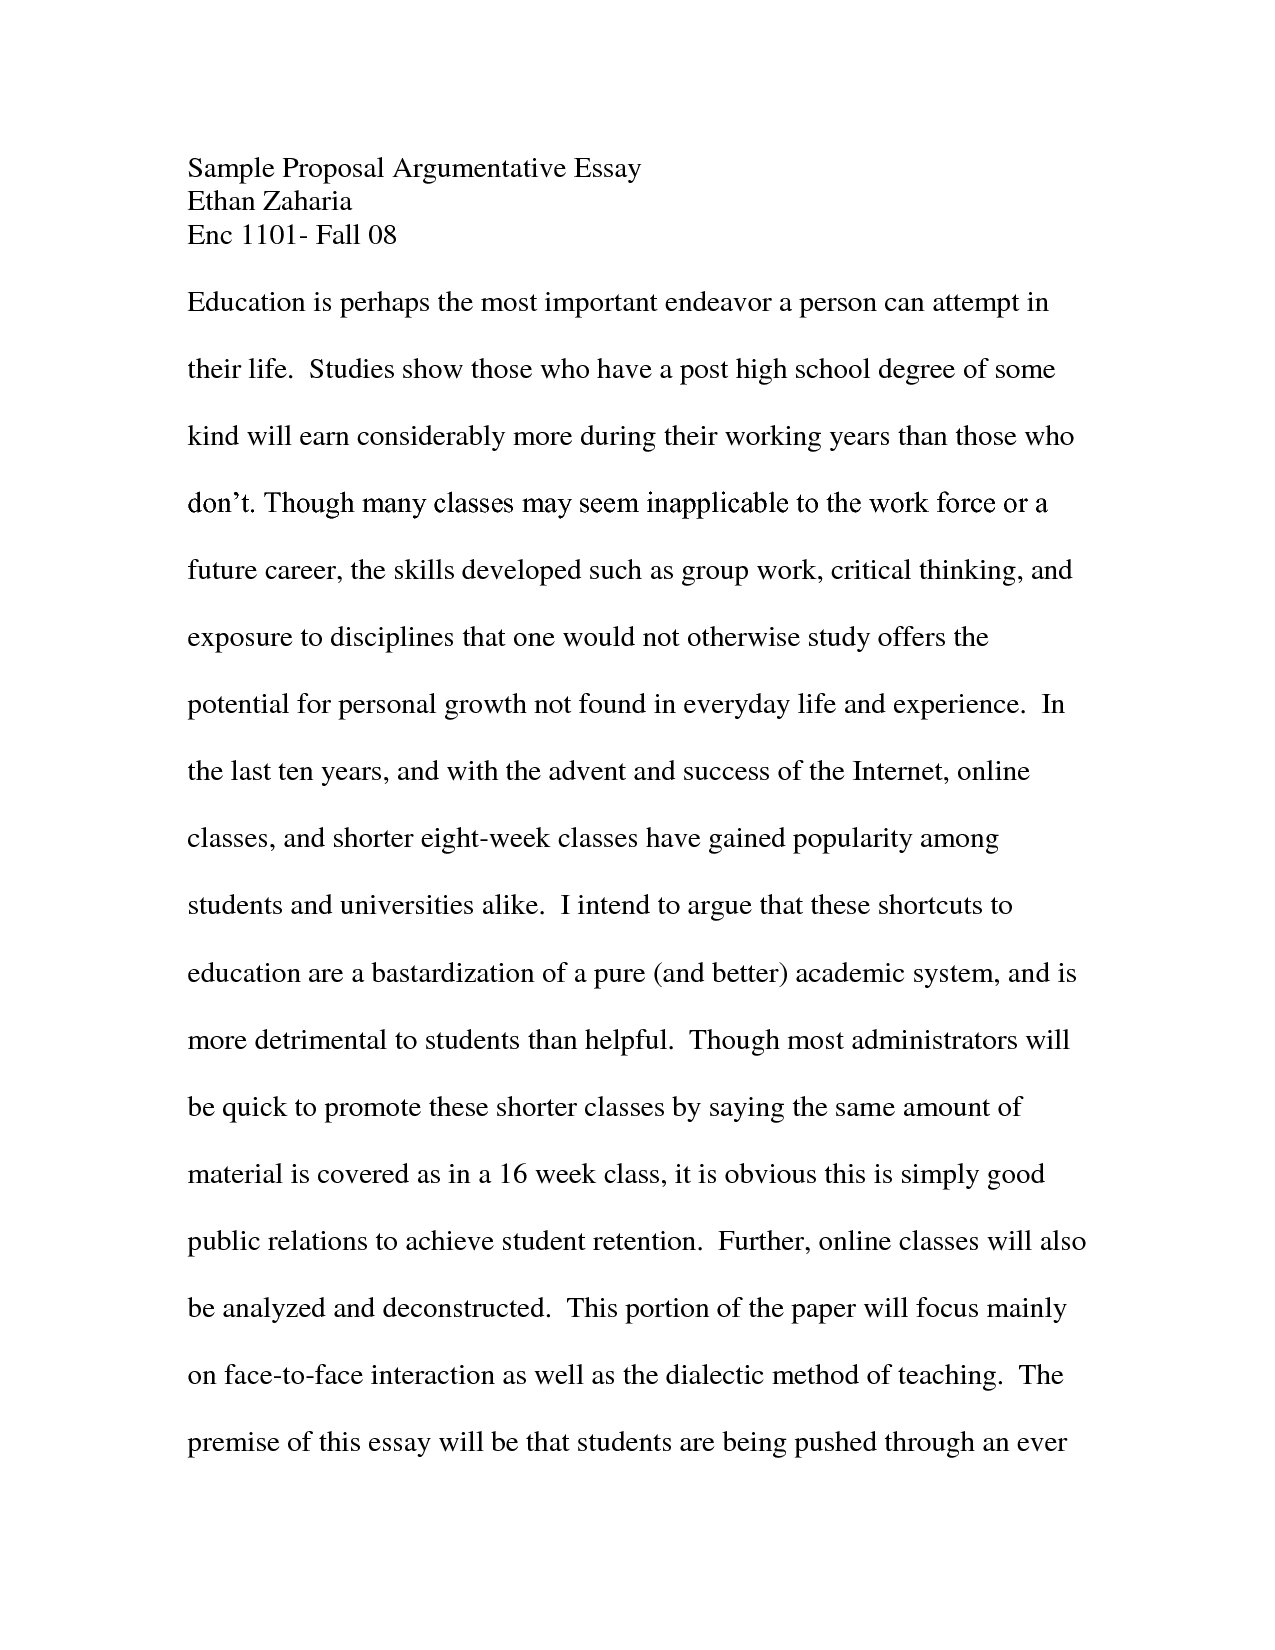 008 Solar System Homework Lampa How To Write Good Persuasive Essay For College Definition Education Psychology Edu Sample Argumentative High S Successful Conclusion Tips On Staar Introduction Frightening Example School Short Pdf Full